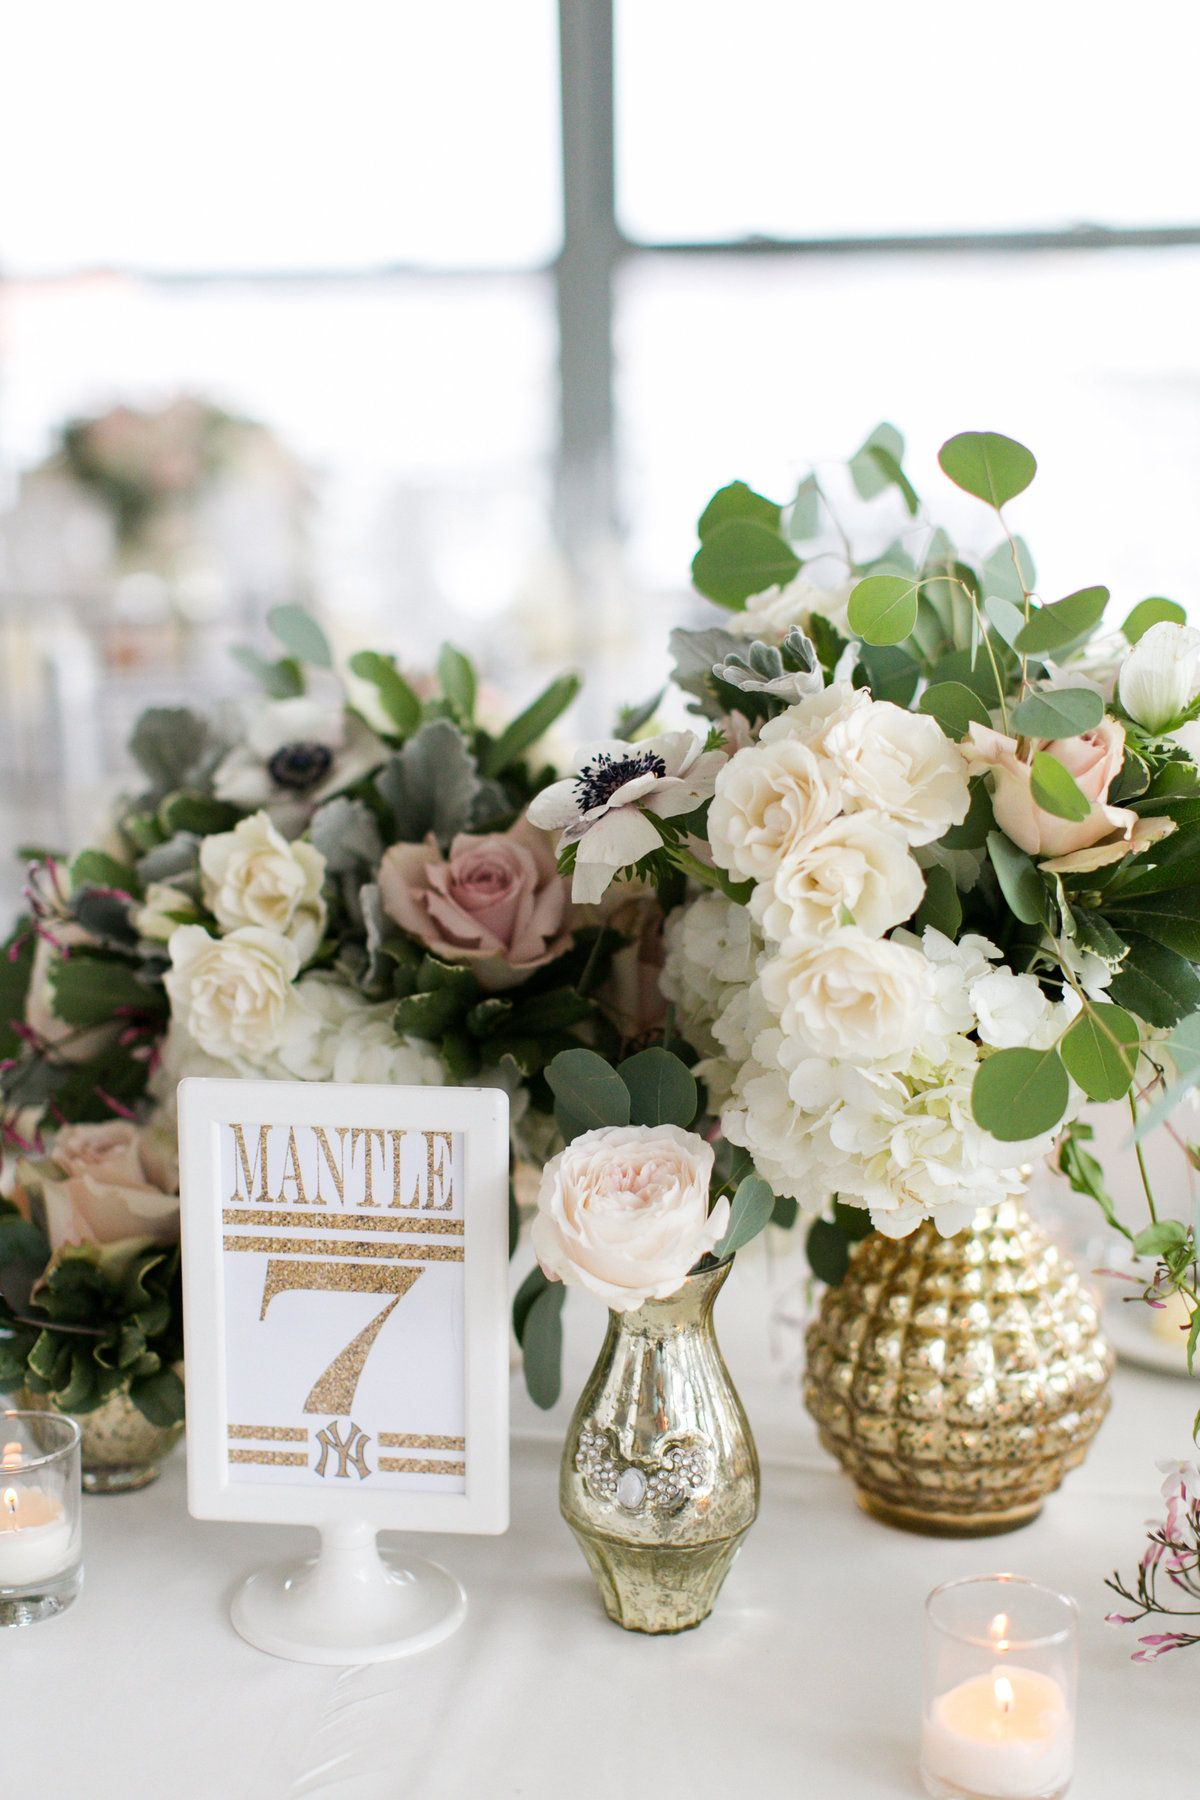 Make it personal unique wedding table number ideas by